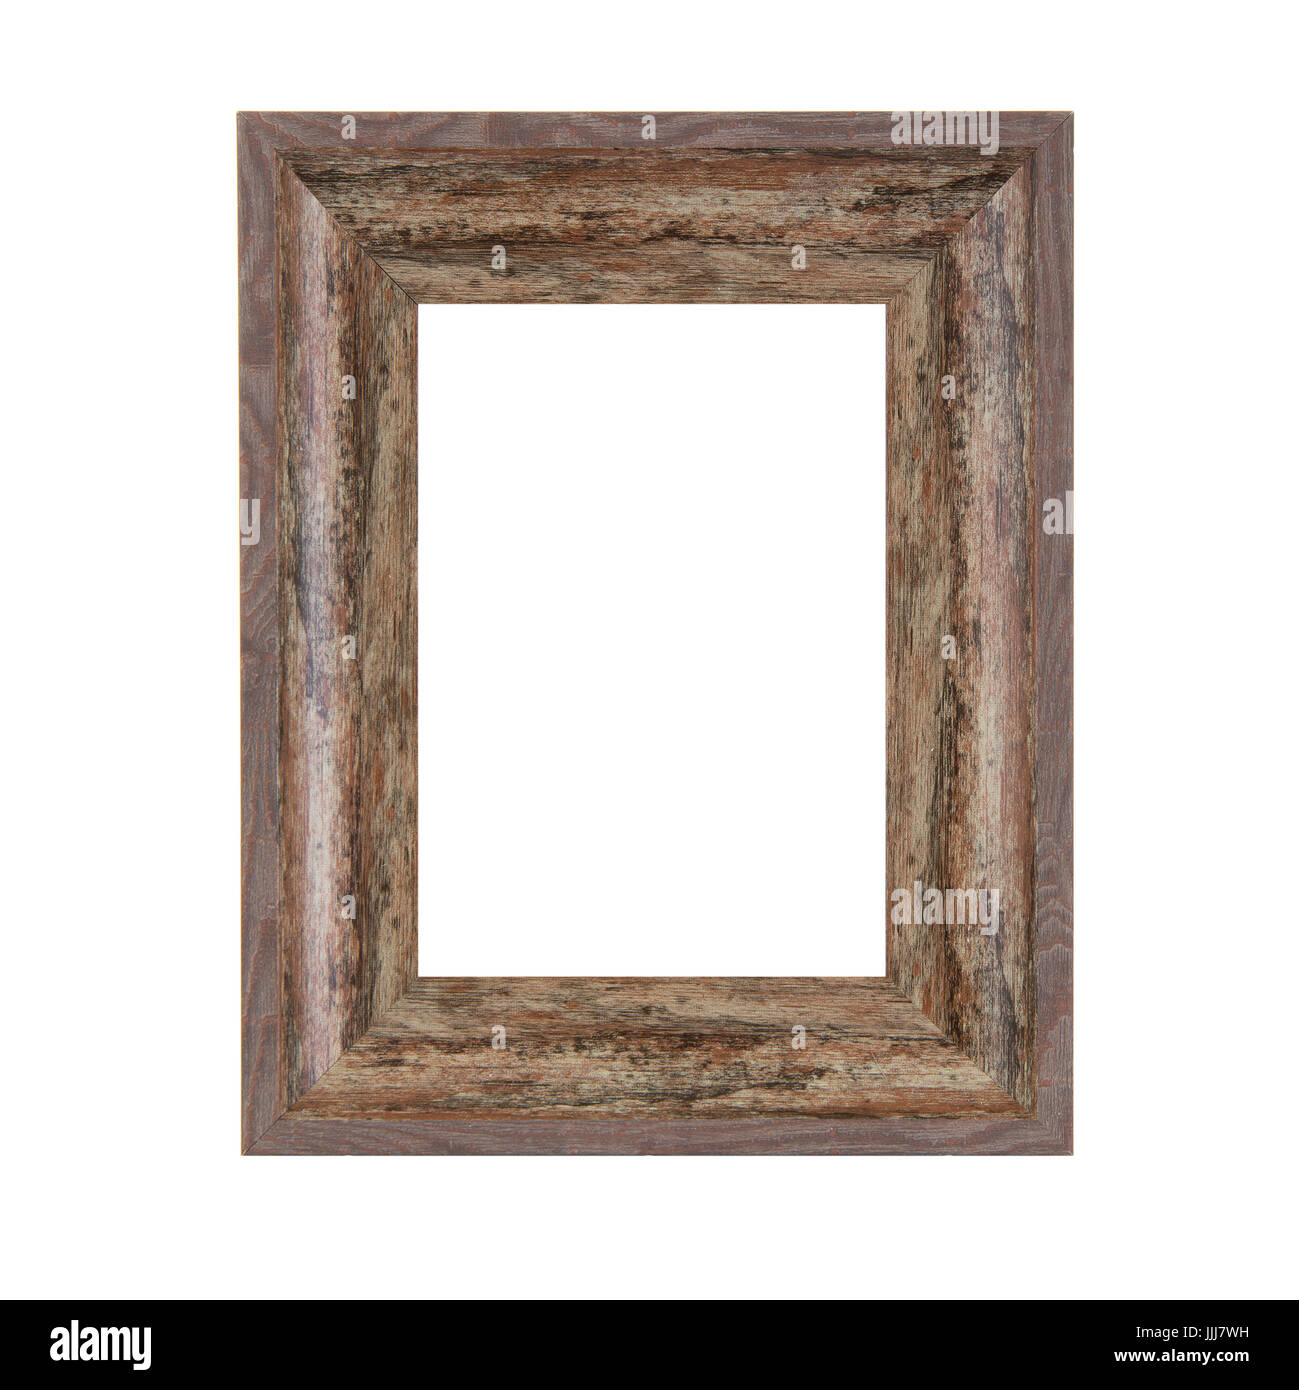 Rustic Vintage Wooden Frame on a white background Stock Photo ...